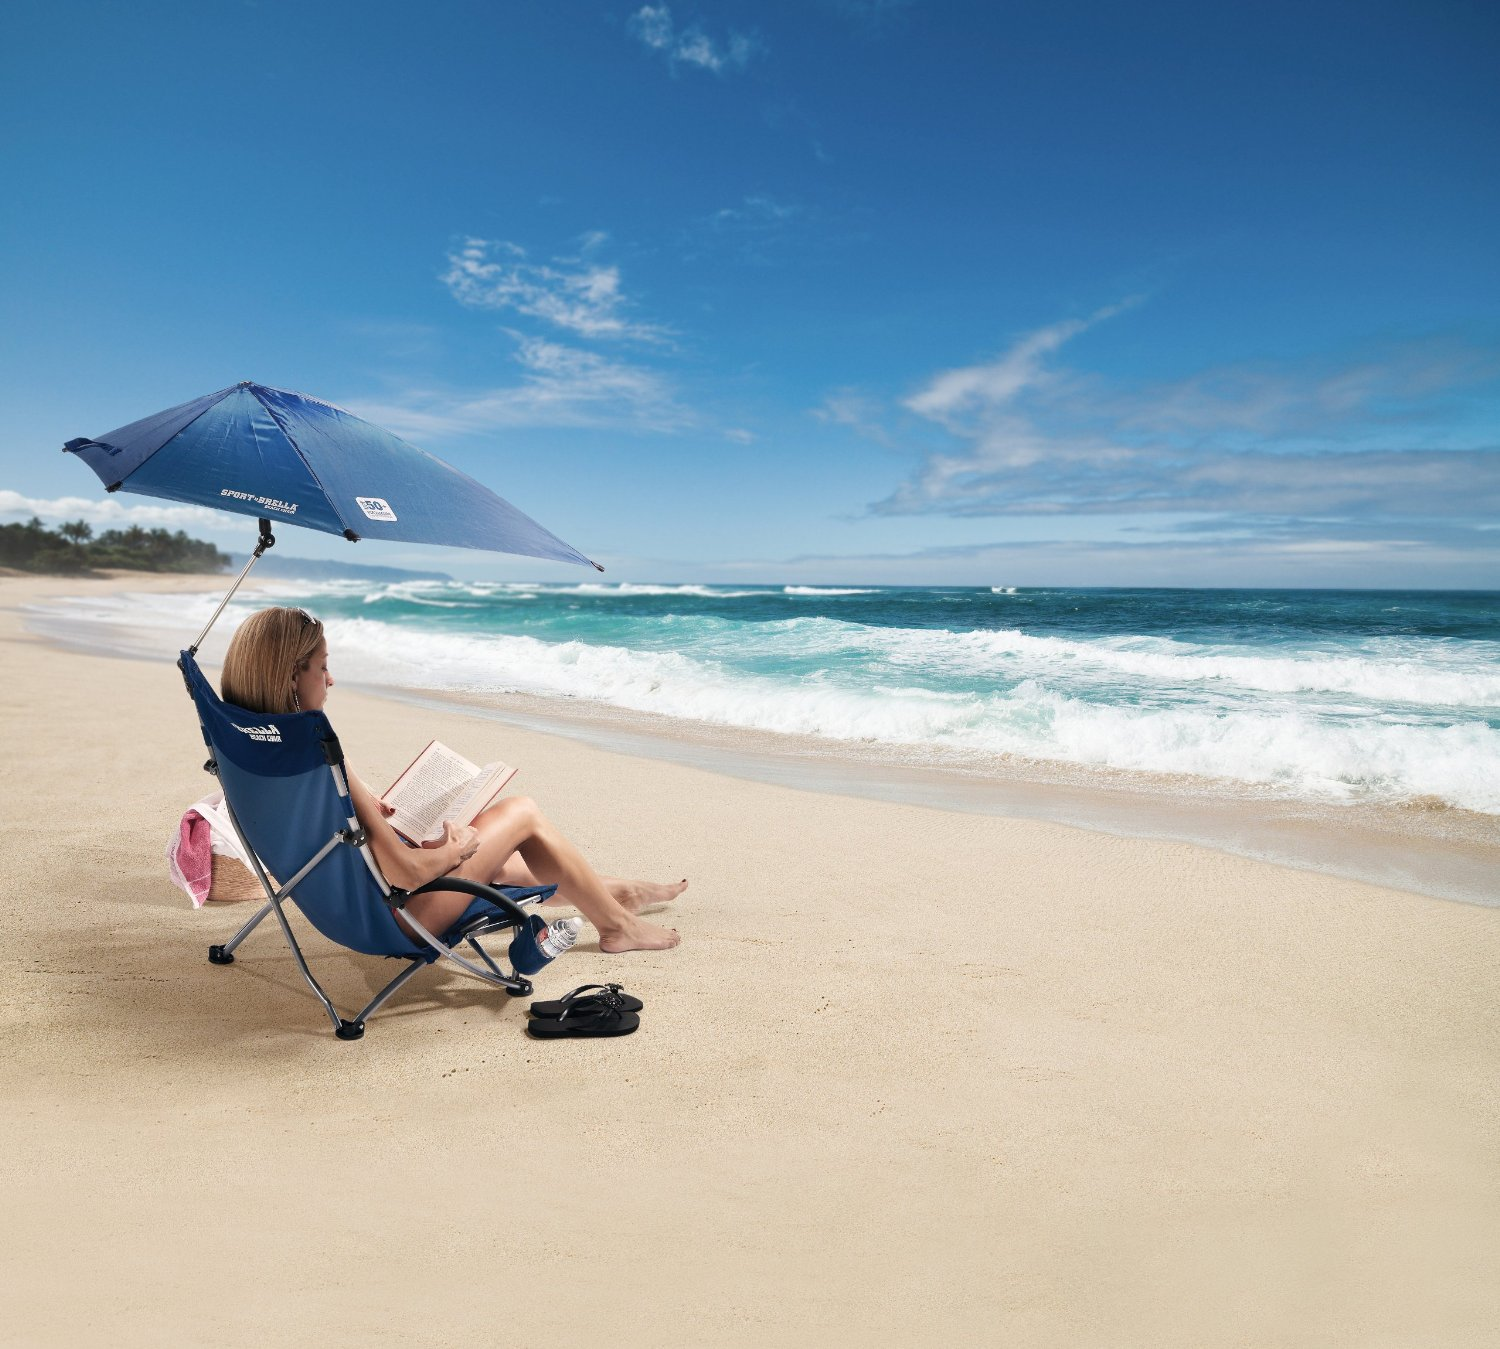 Sport-Brella Beach Chair - Portable Umbrella Chair & Portable Umbrella Chair: Kelsyus Kids Canopy Chair Umbrella Chair